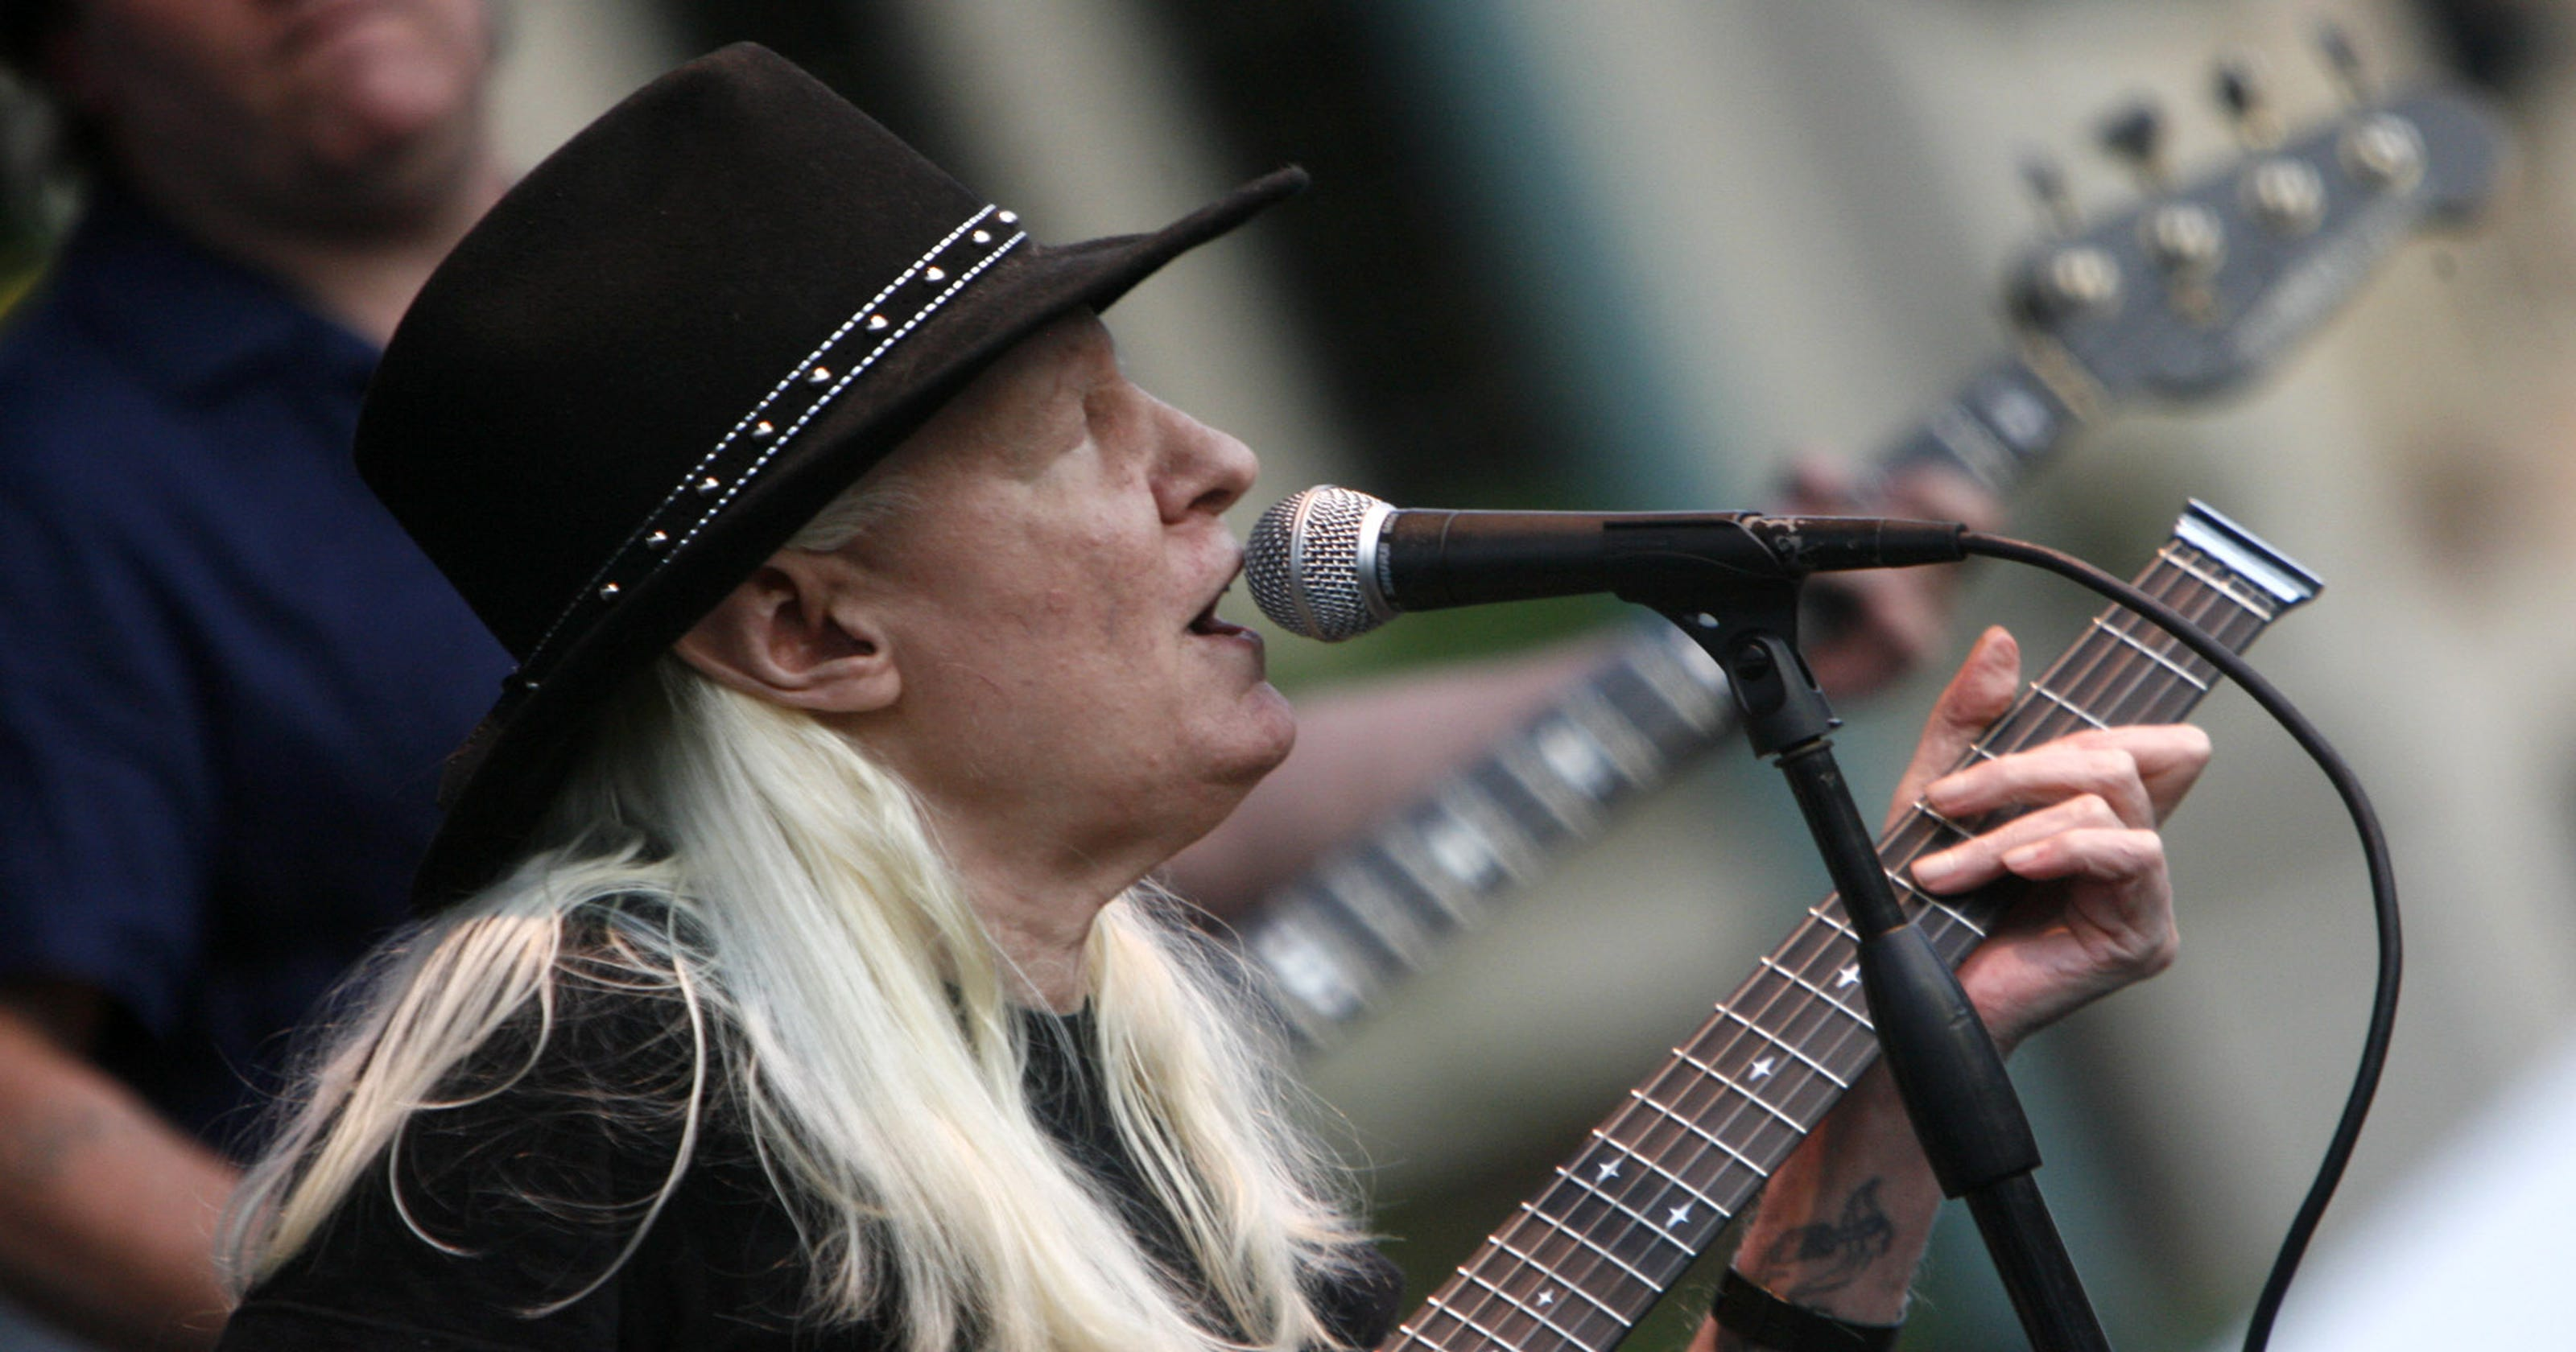 Blues Legend Johnny Winter Dies At 70 In Zurich Radio Wave Diagram Http Hollywoodbollywood Co Hoadmin